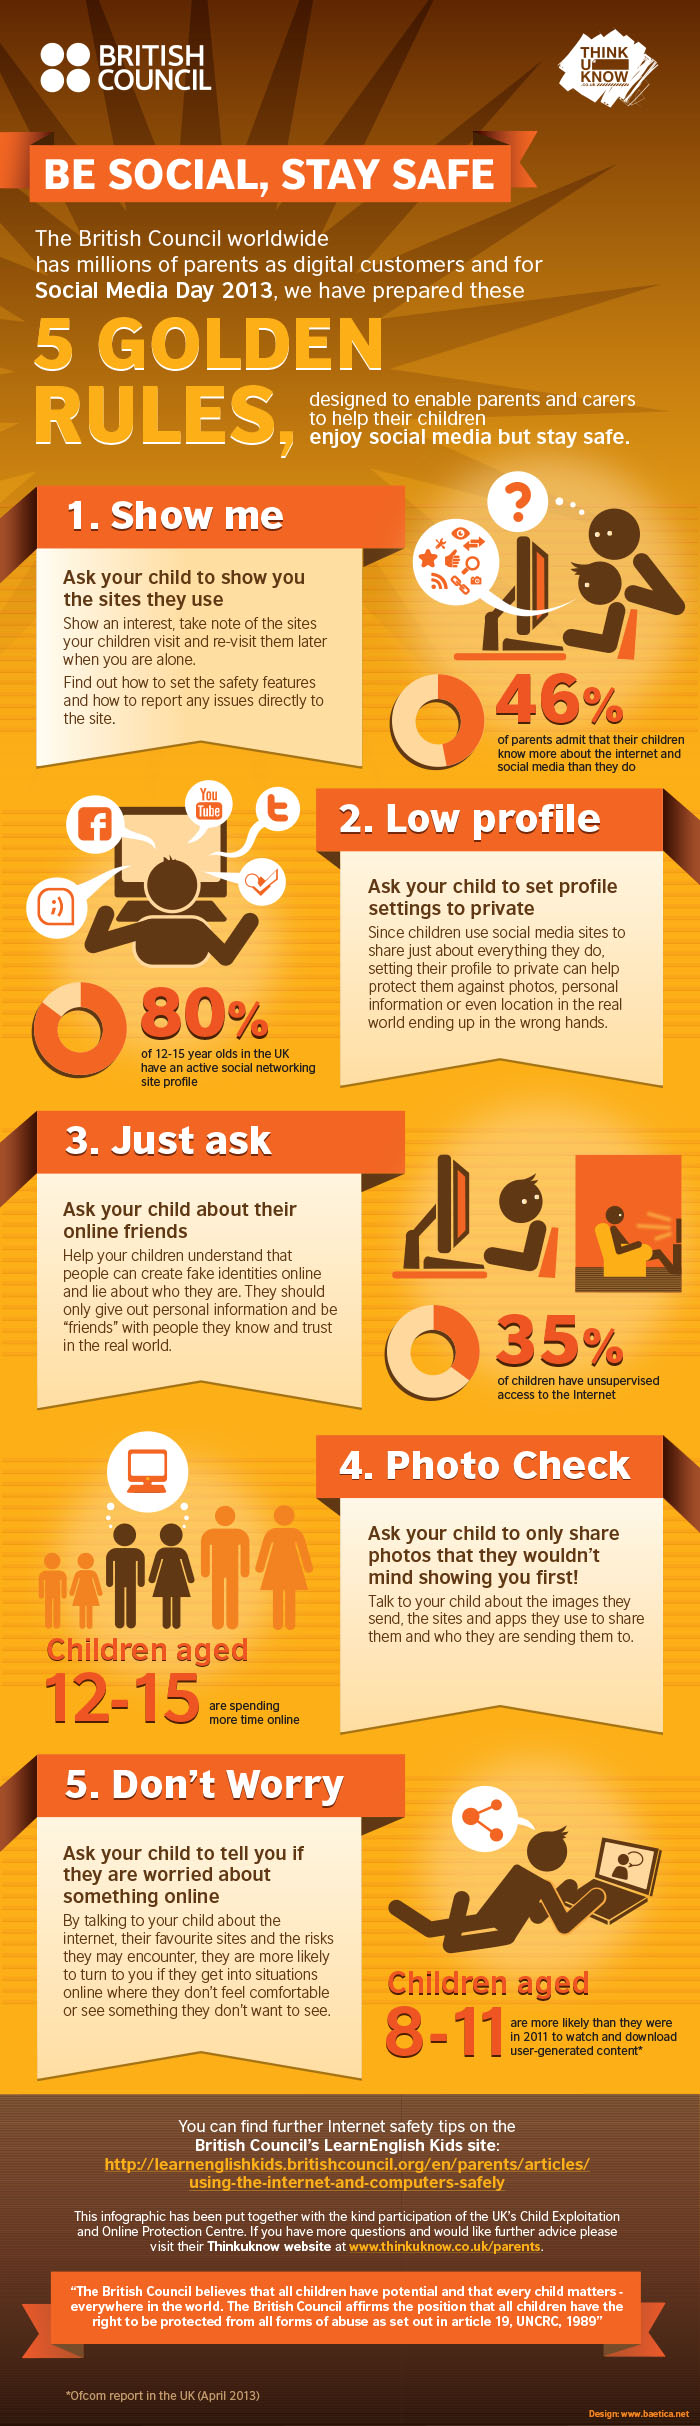 5 golden rules children stay safe online #staysafe british council